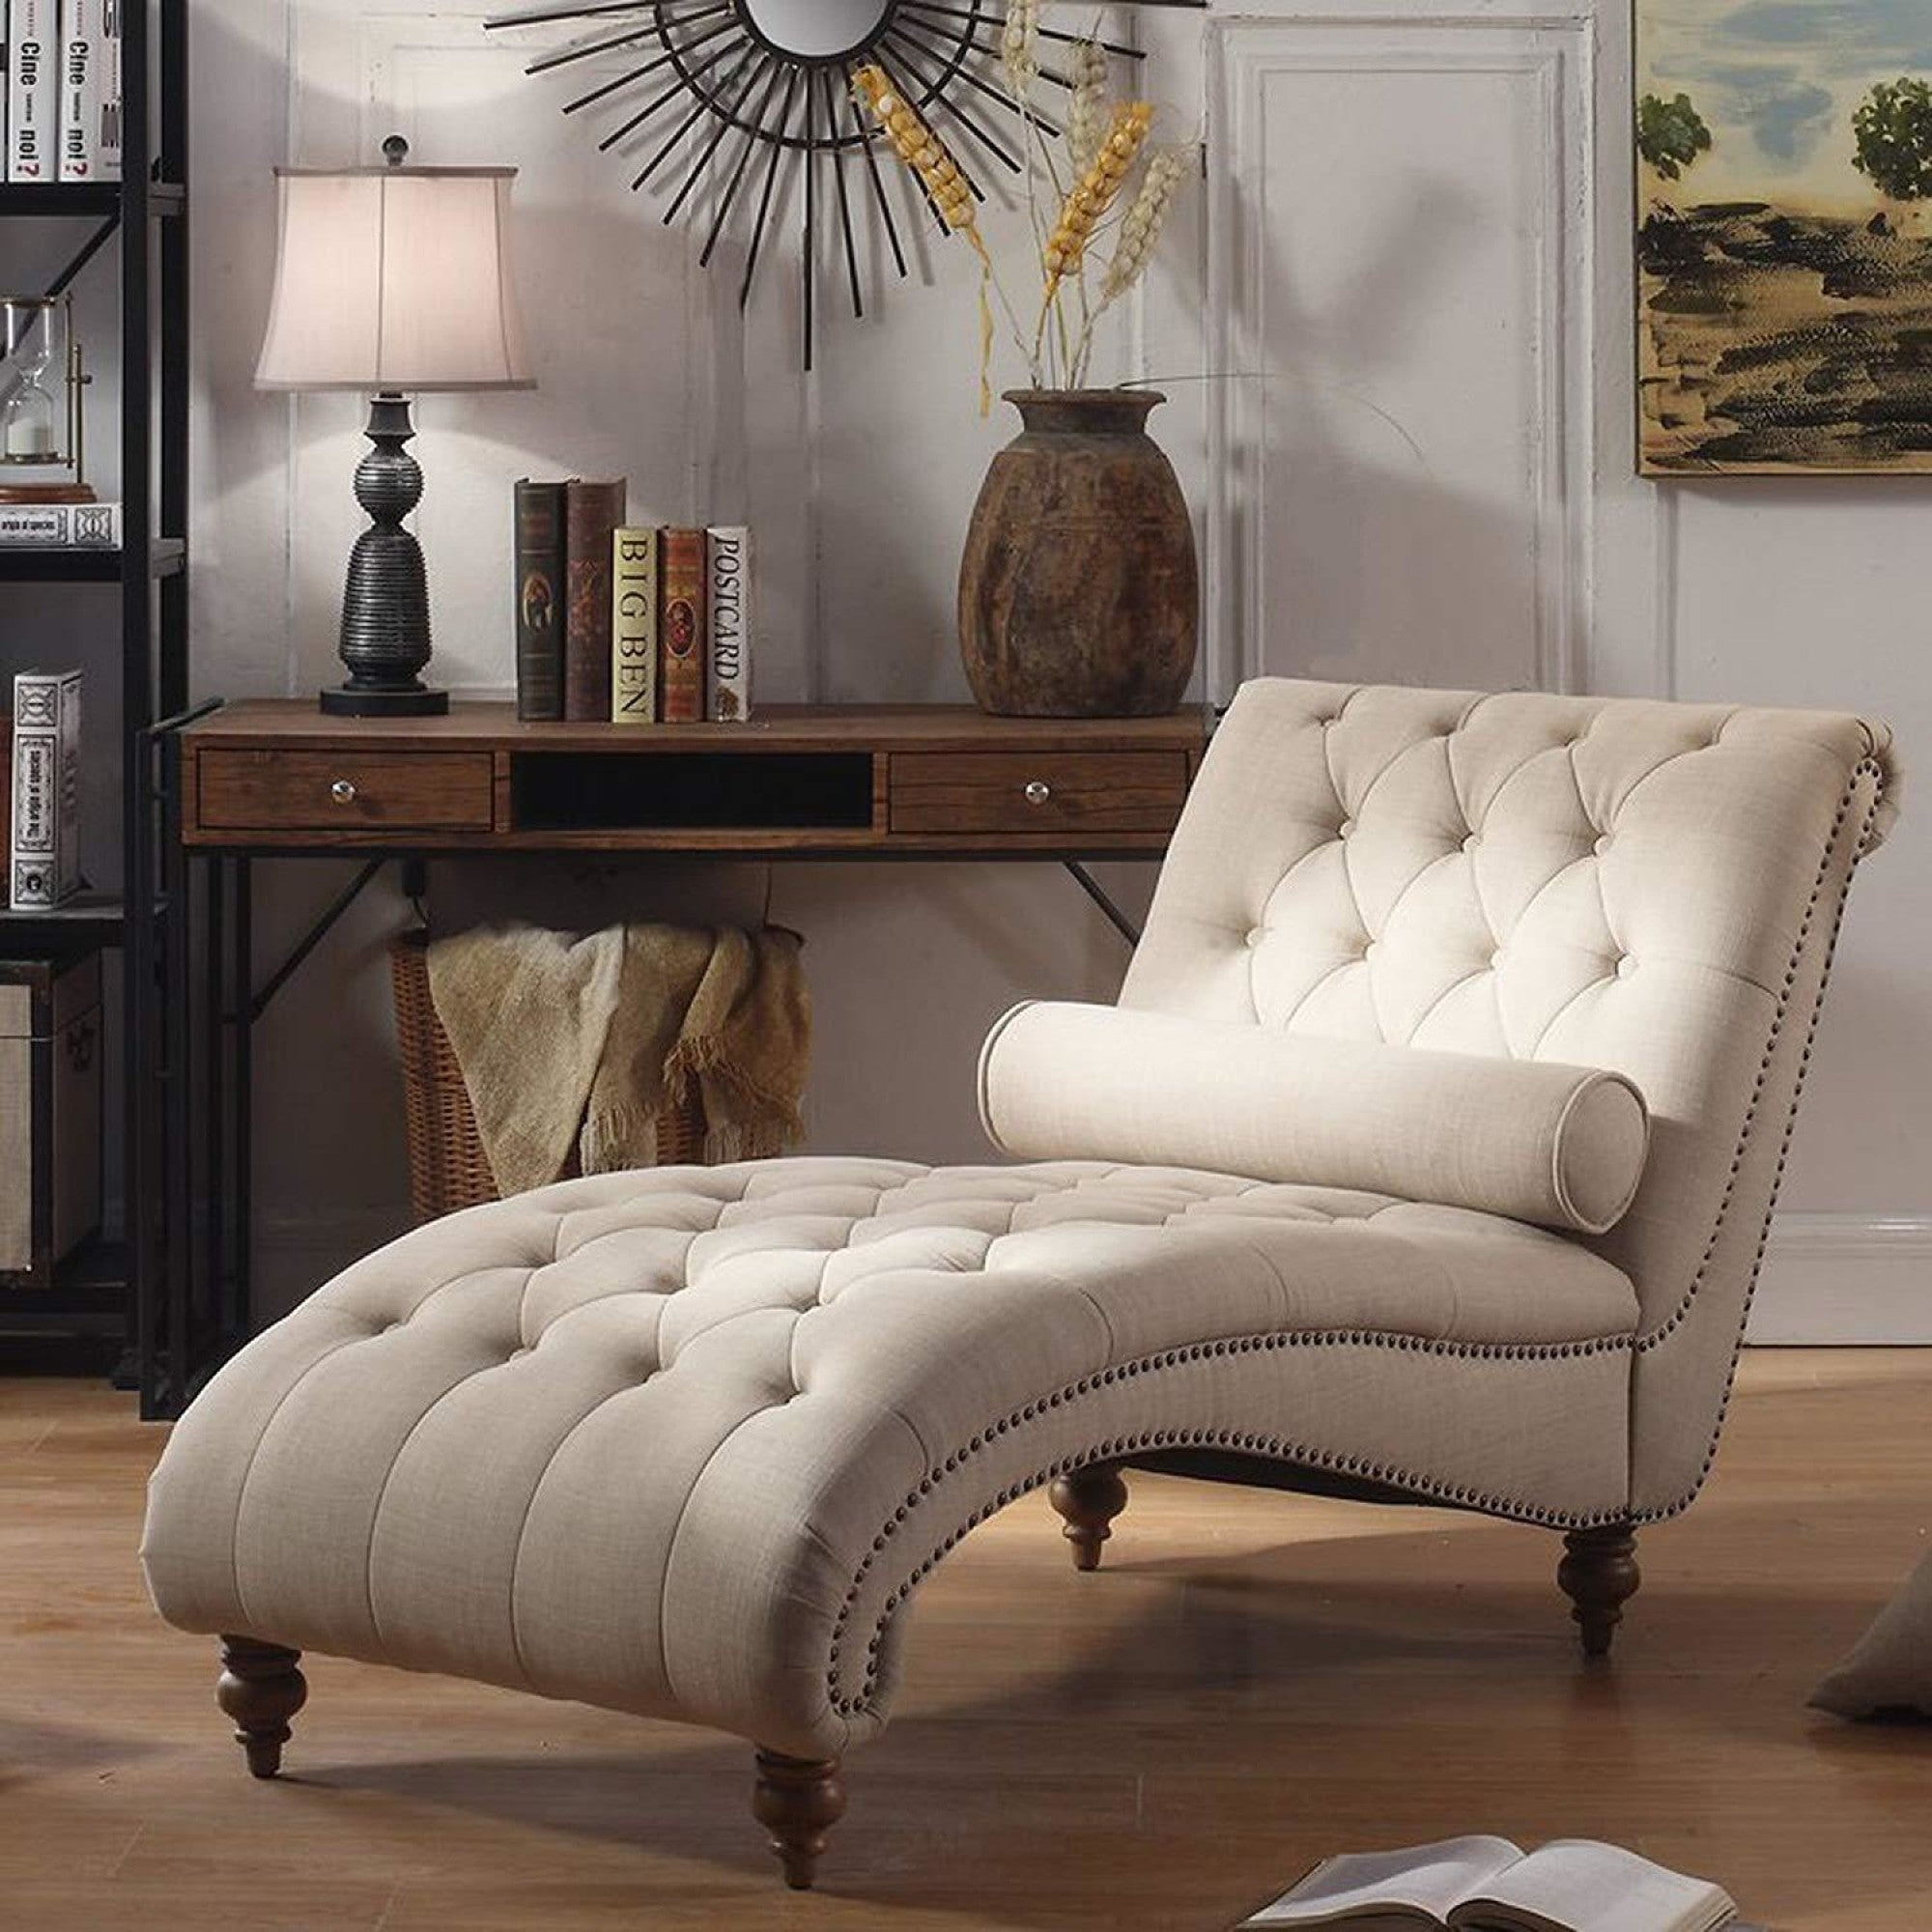 - Luxorious Indoor Chaise Lounge Chair - Contemporary Tufted Living